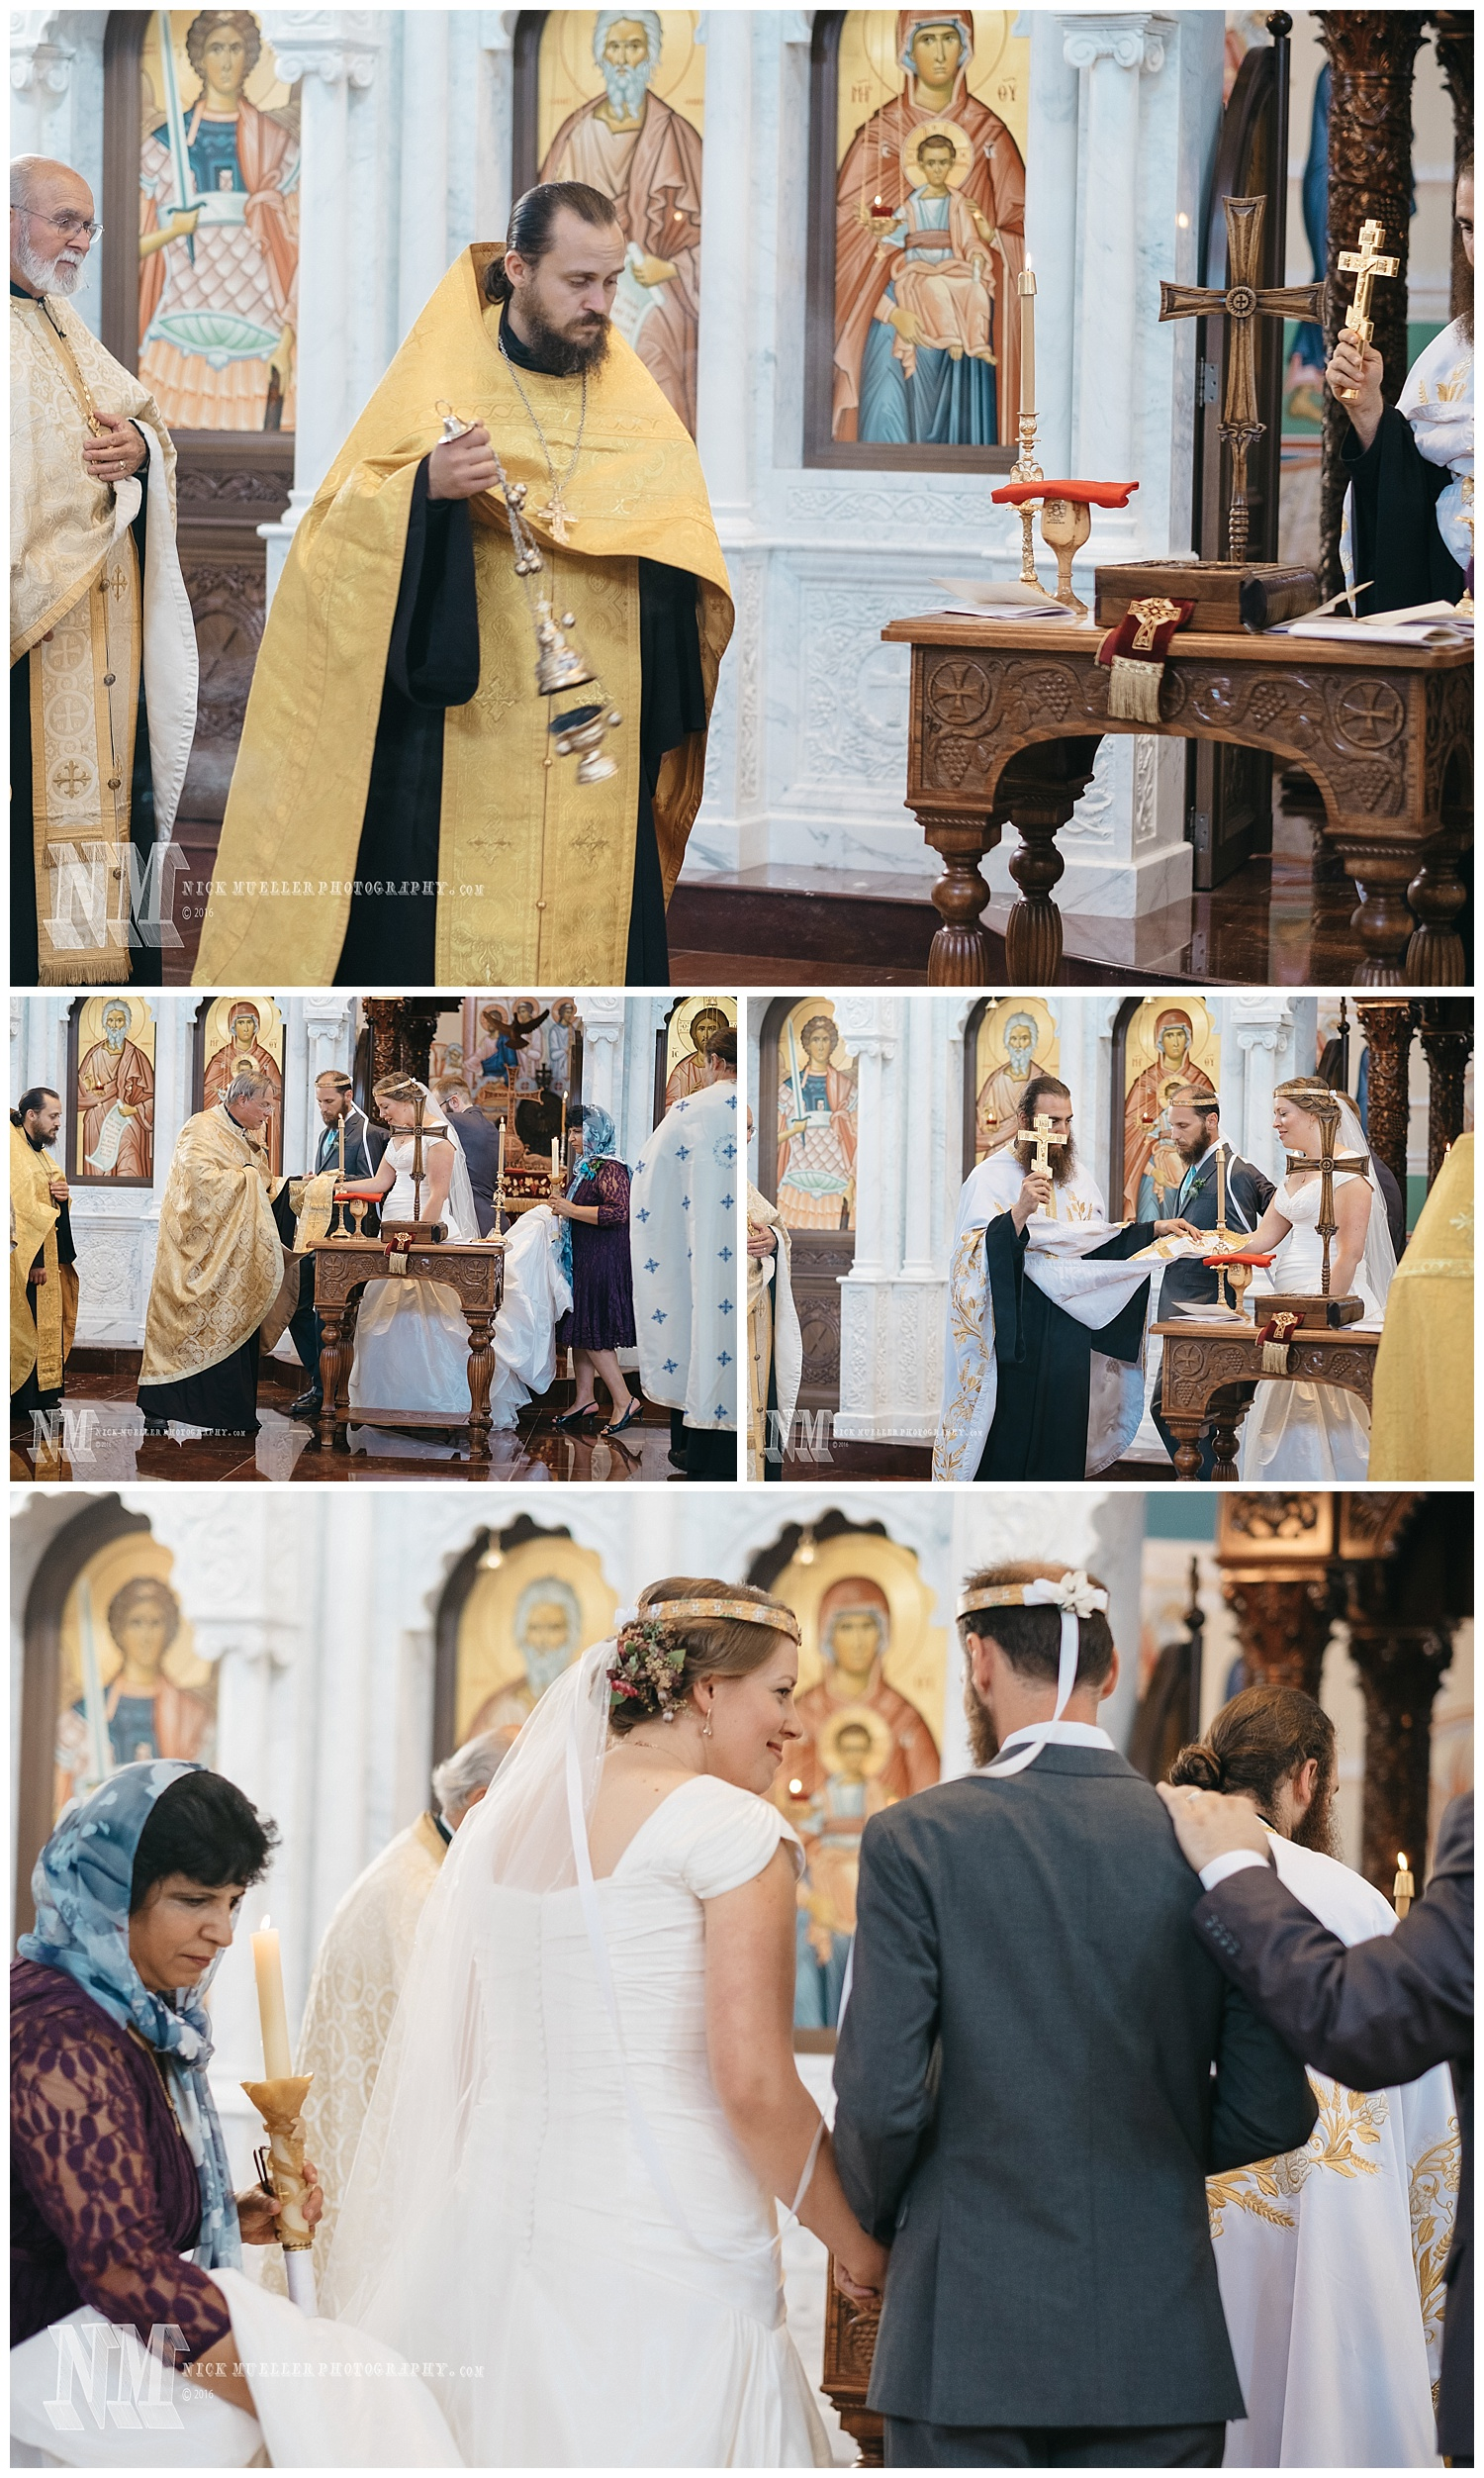 Dance of Isaiah at the Alter